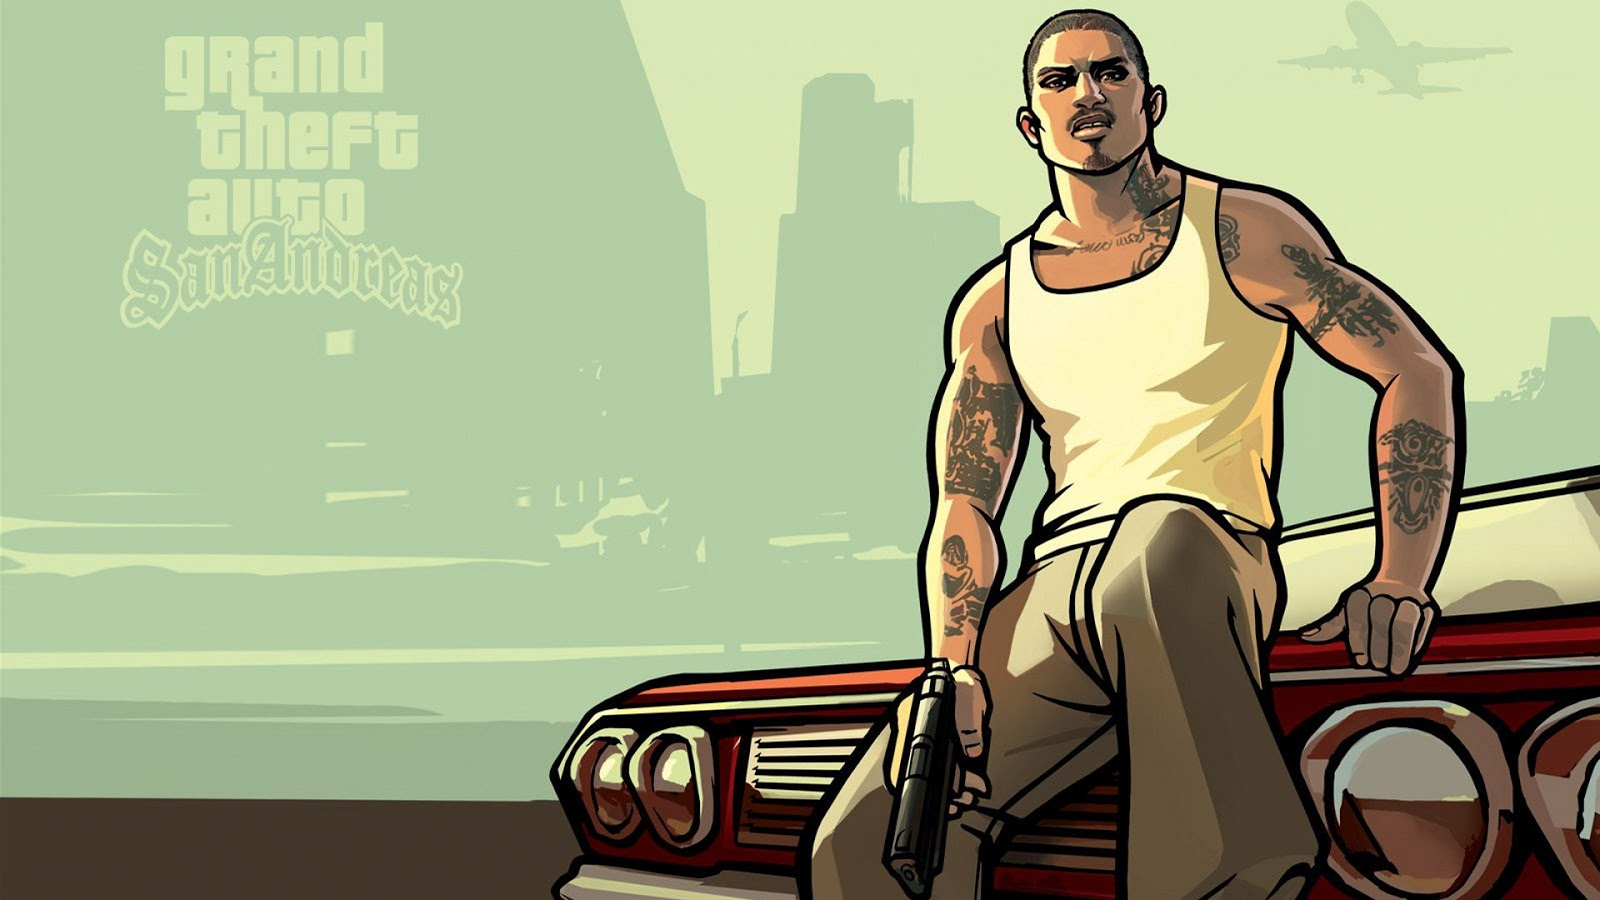 gta san andreas for android free download apk + data google drive